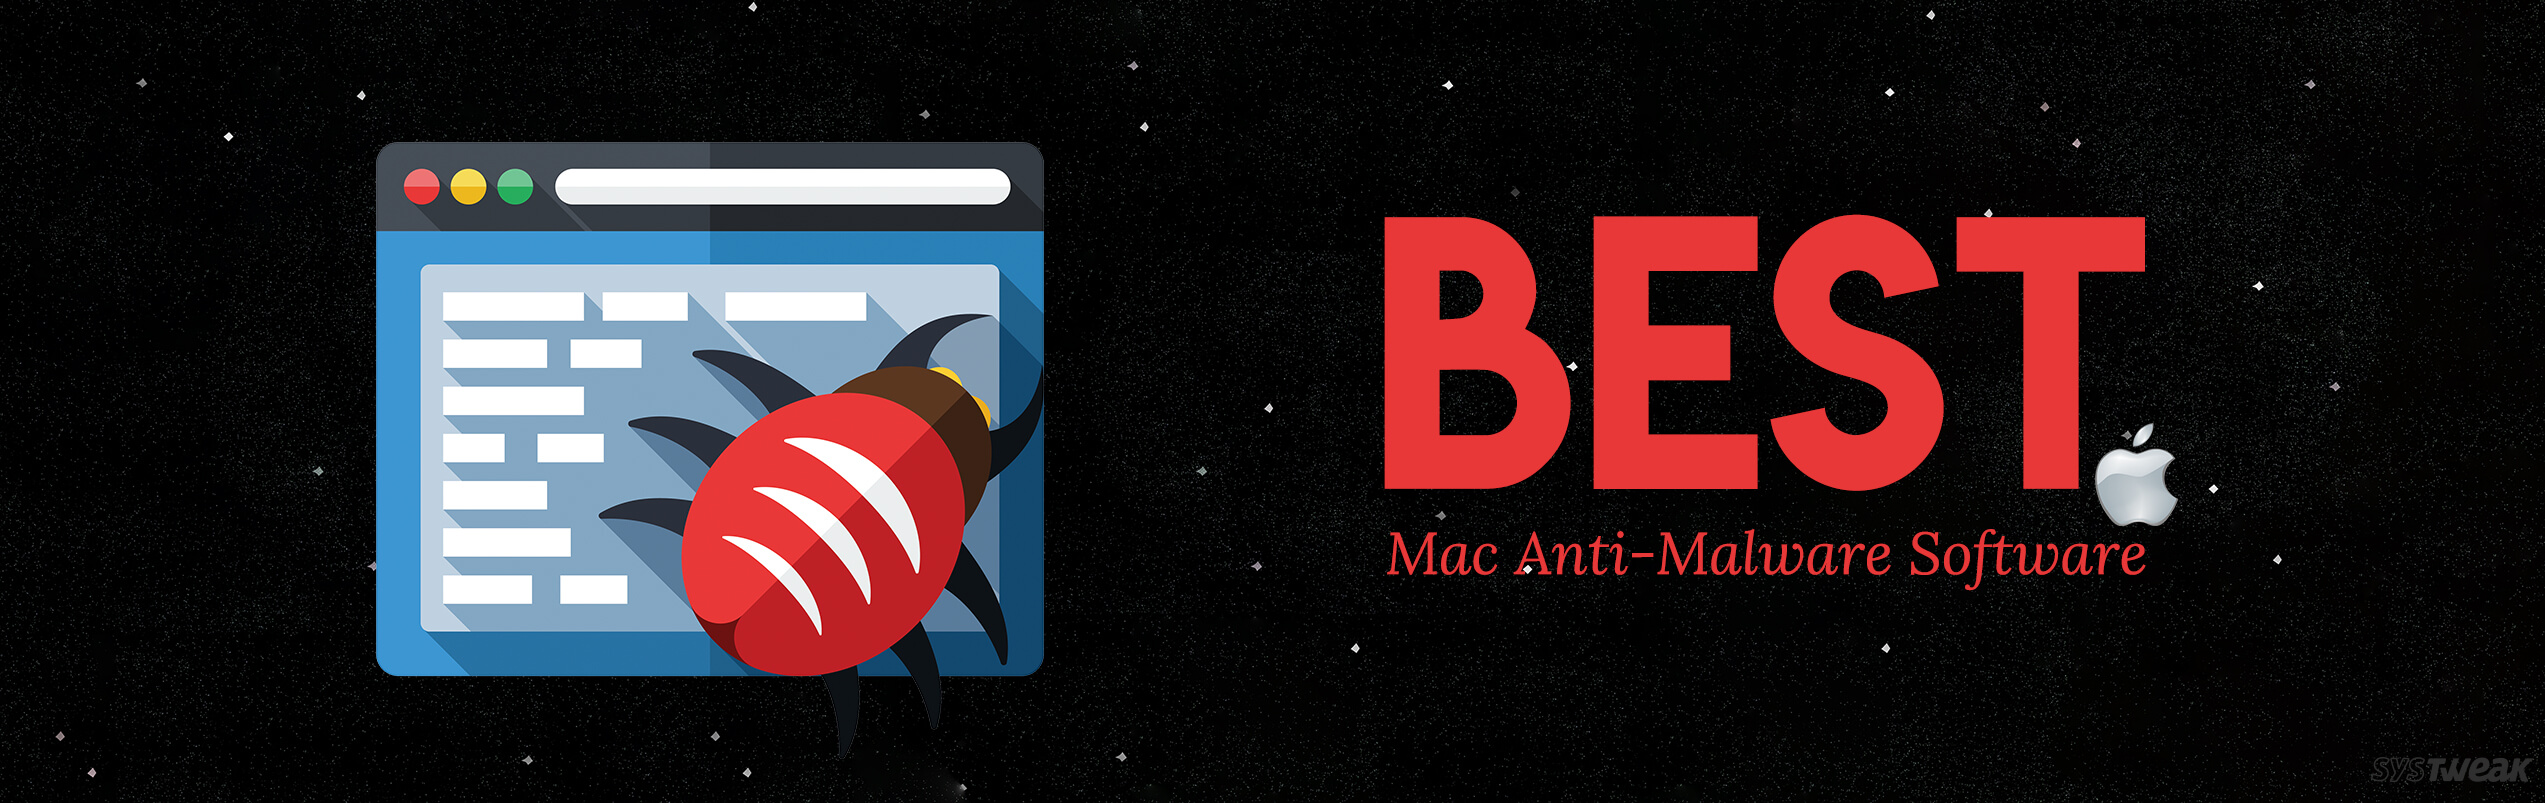 15 Best Anti-Malware Software For Mac 2018